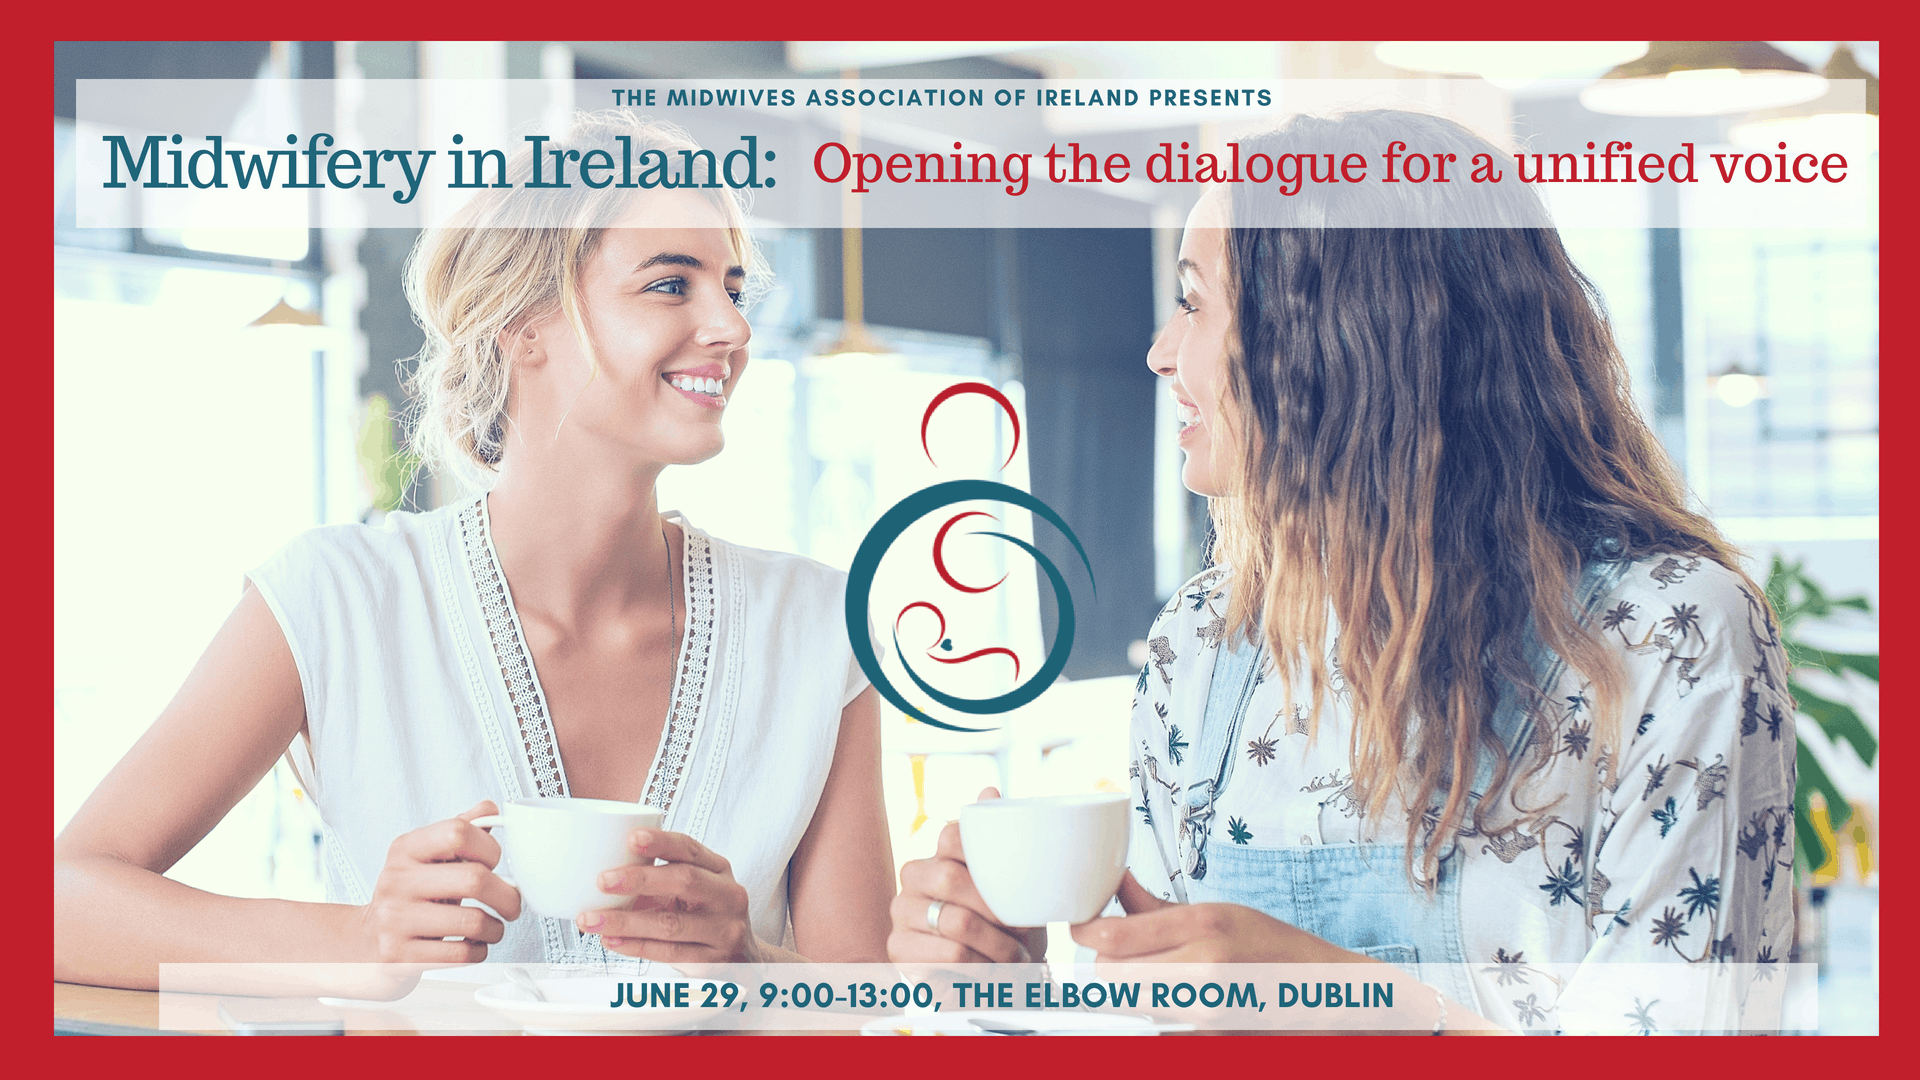 Midwifery in Ireland opening the dialogue for a unified voice